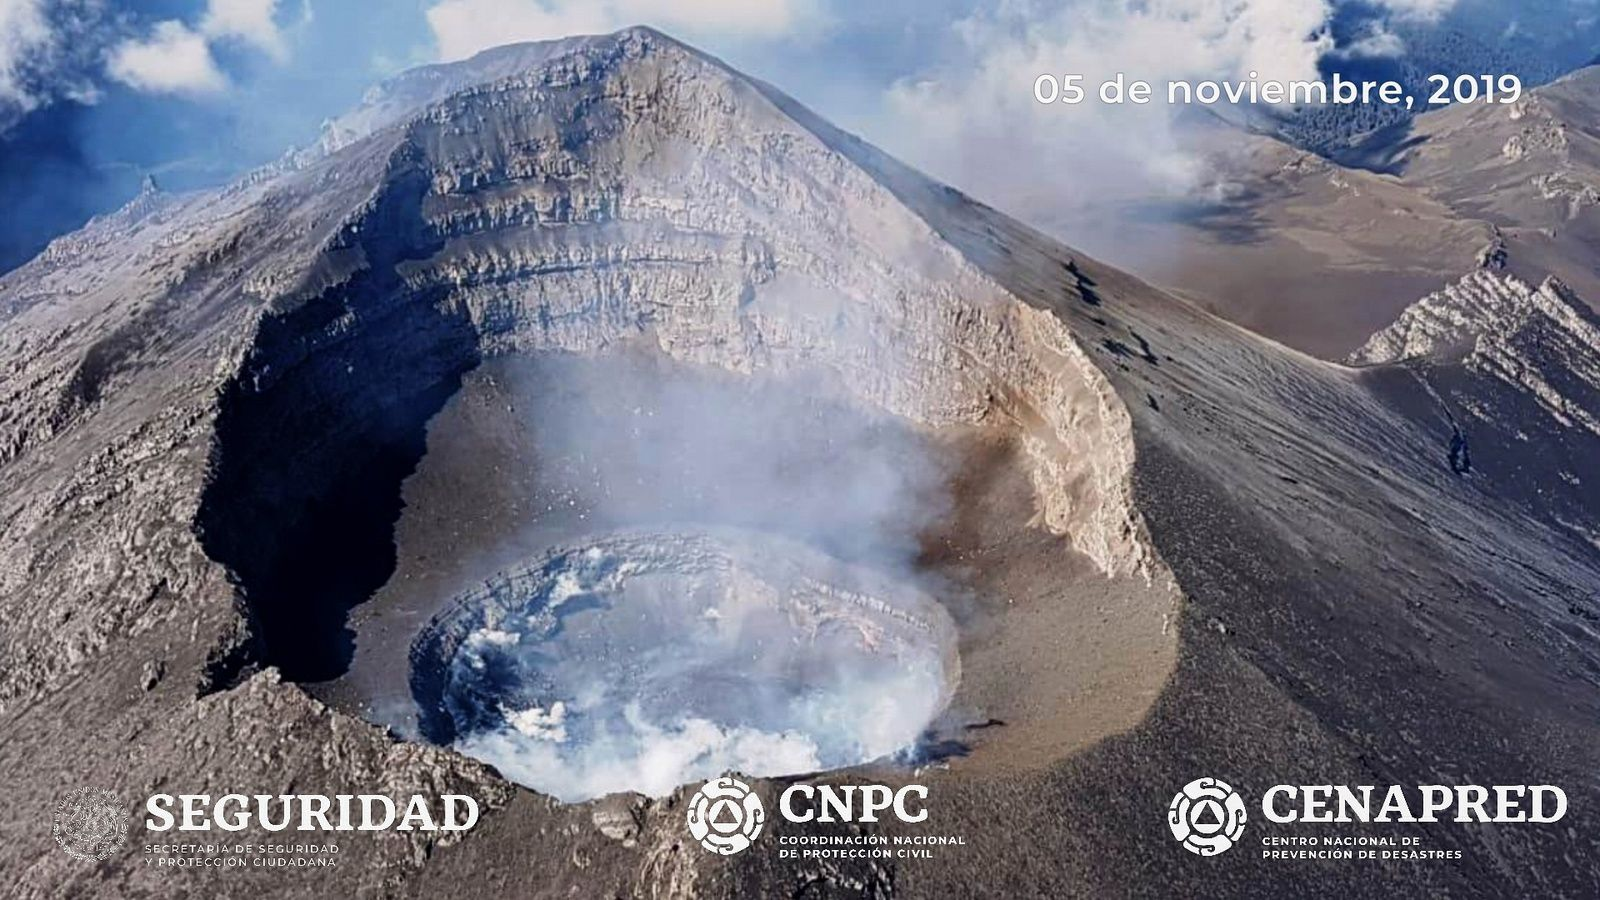 Popocatépetl - overflight of volcano and dome # 85 - Doc. Cenapred / CNPC / UNAM / Seguridad